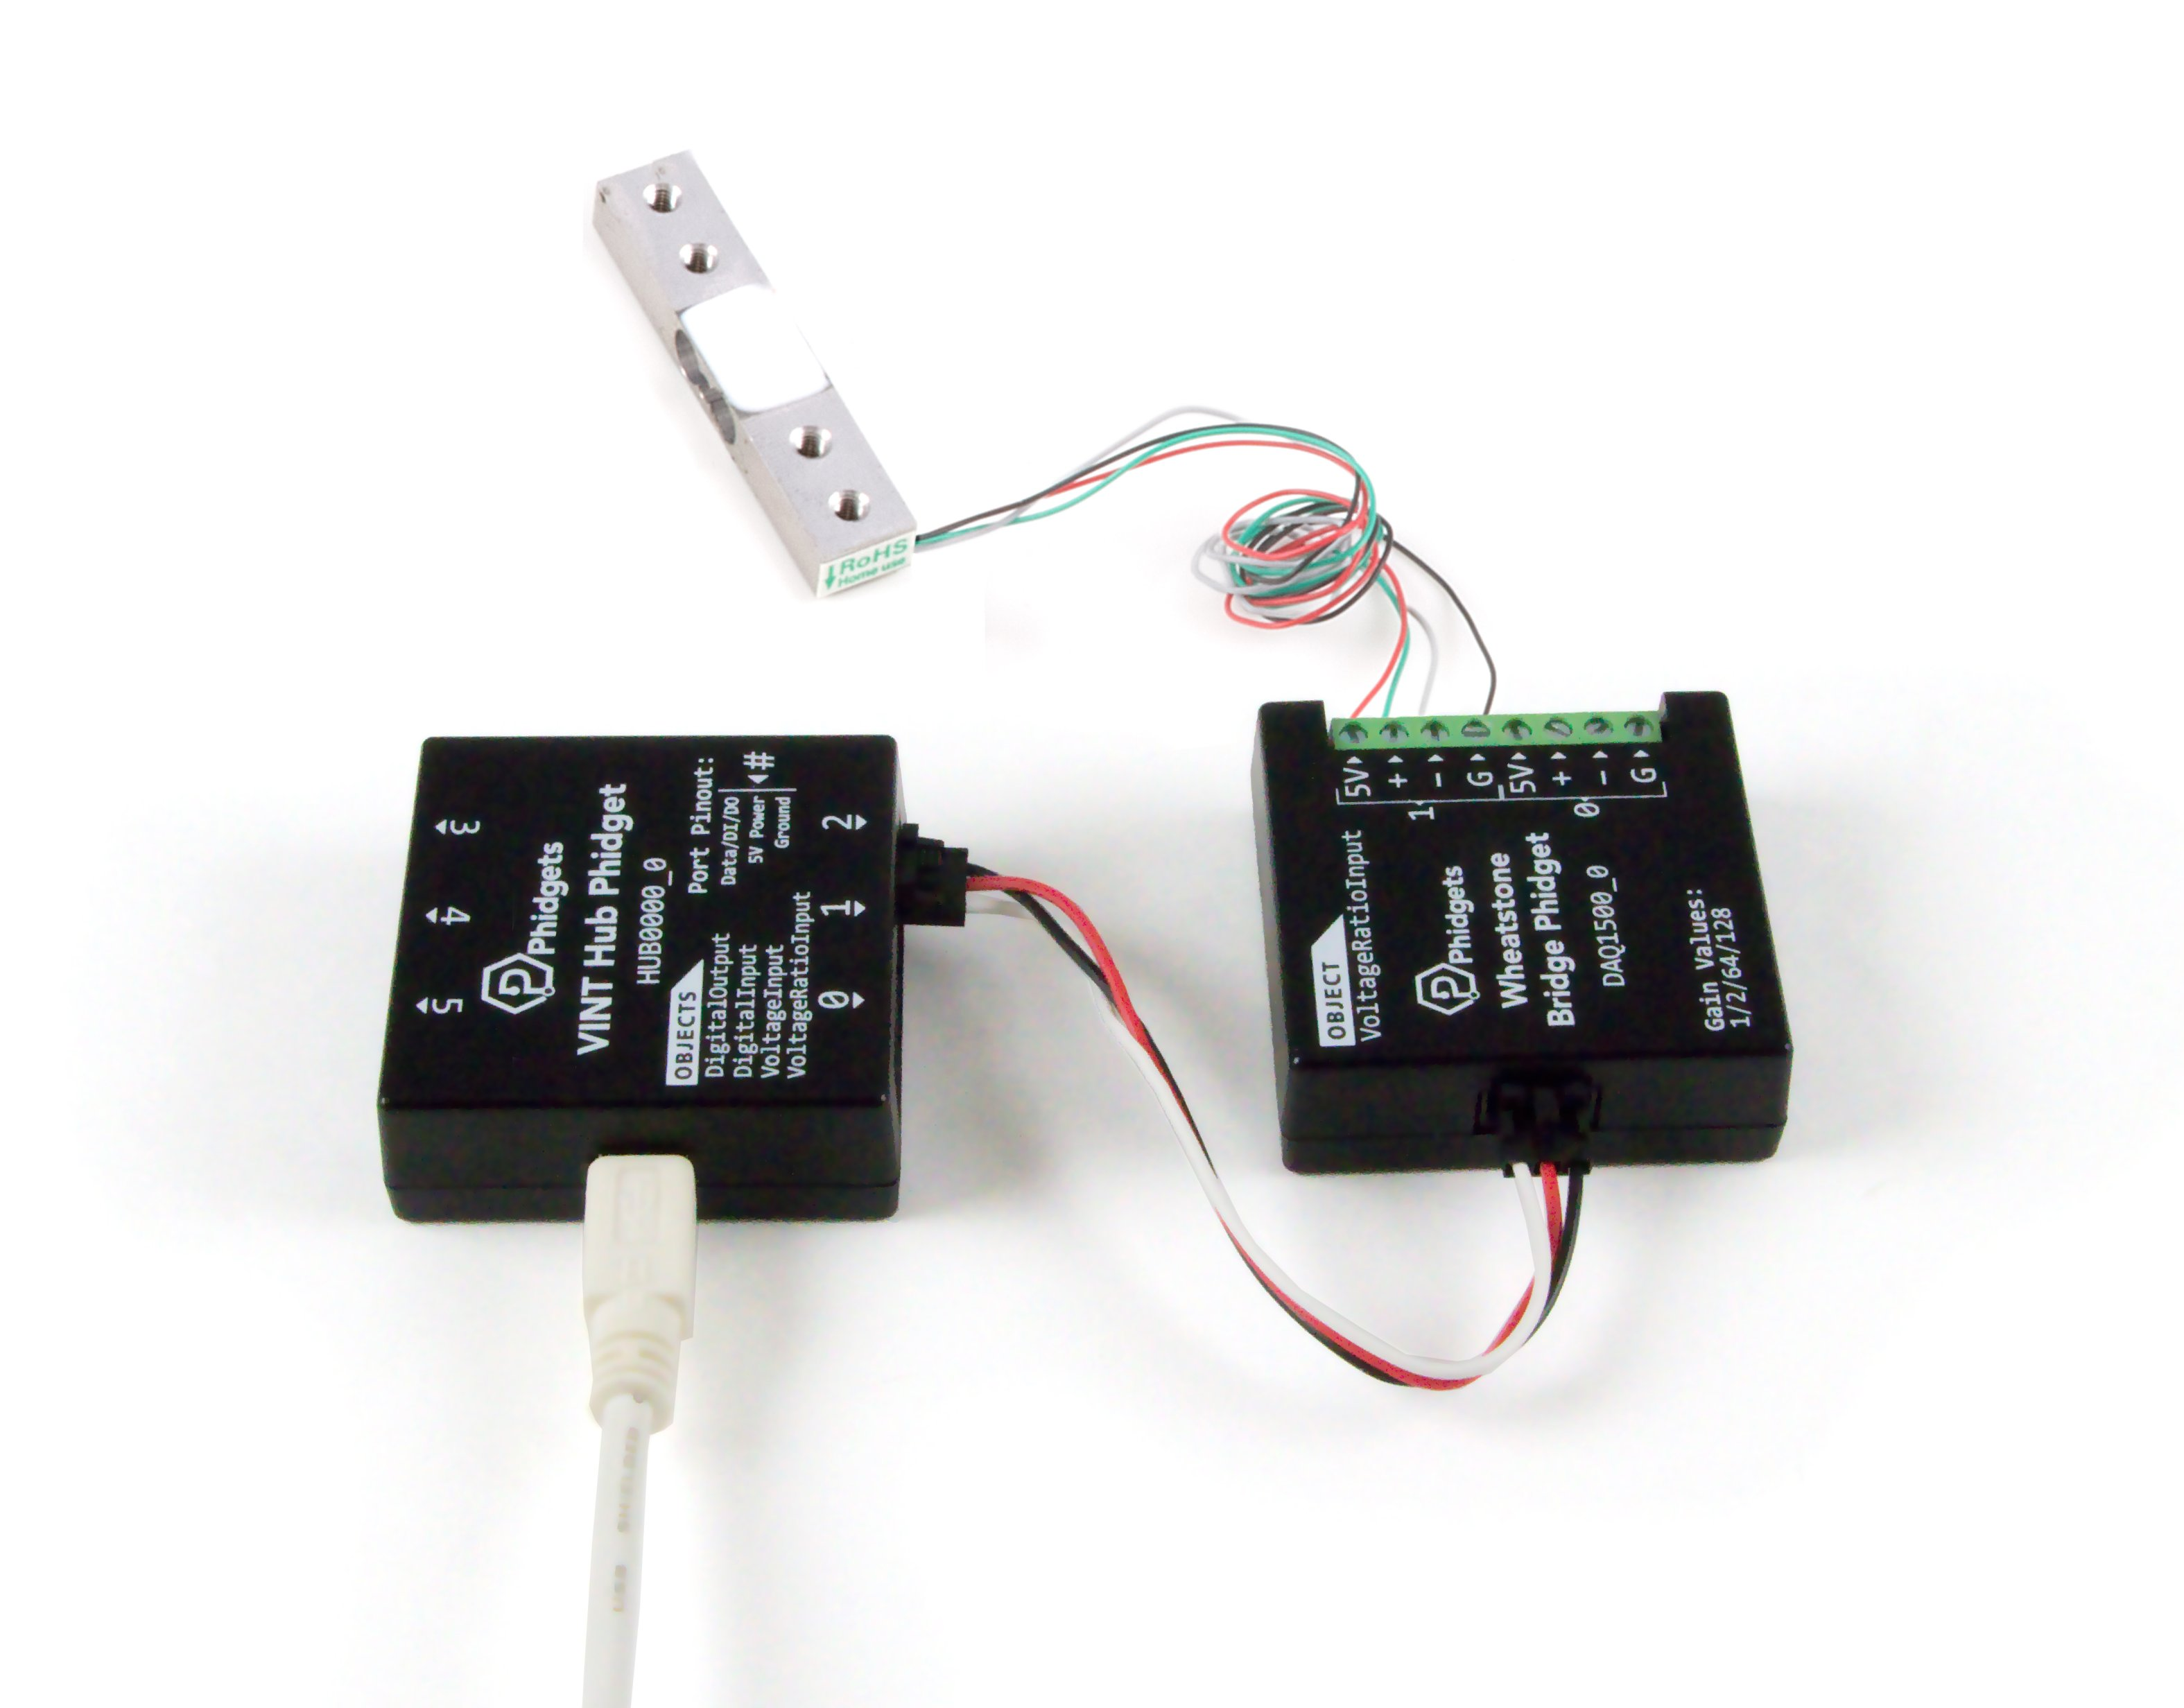 Micro Load Cell (0-780g) - CZL616C - 3132_0 at Phidgets